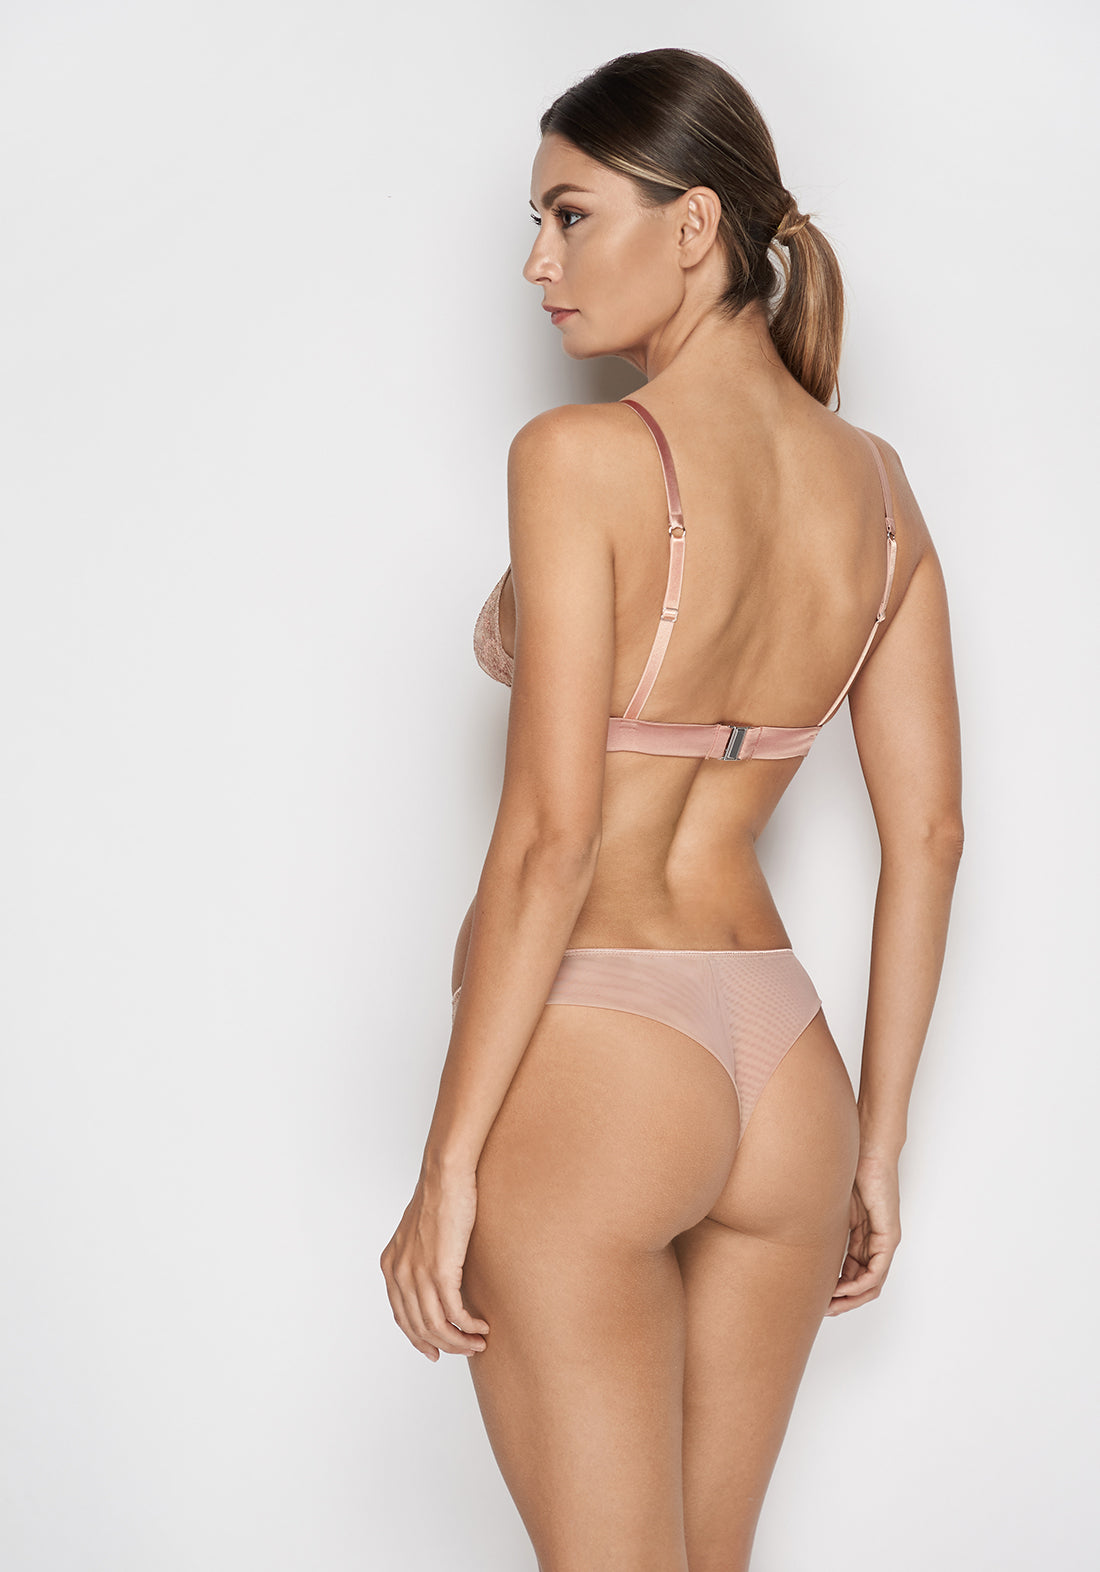 Desert Rose Thong in Rose Gold